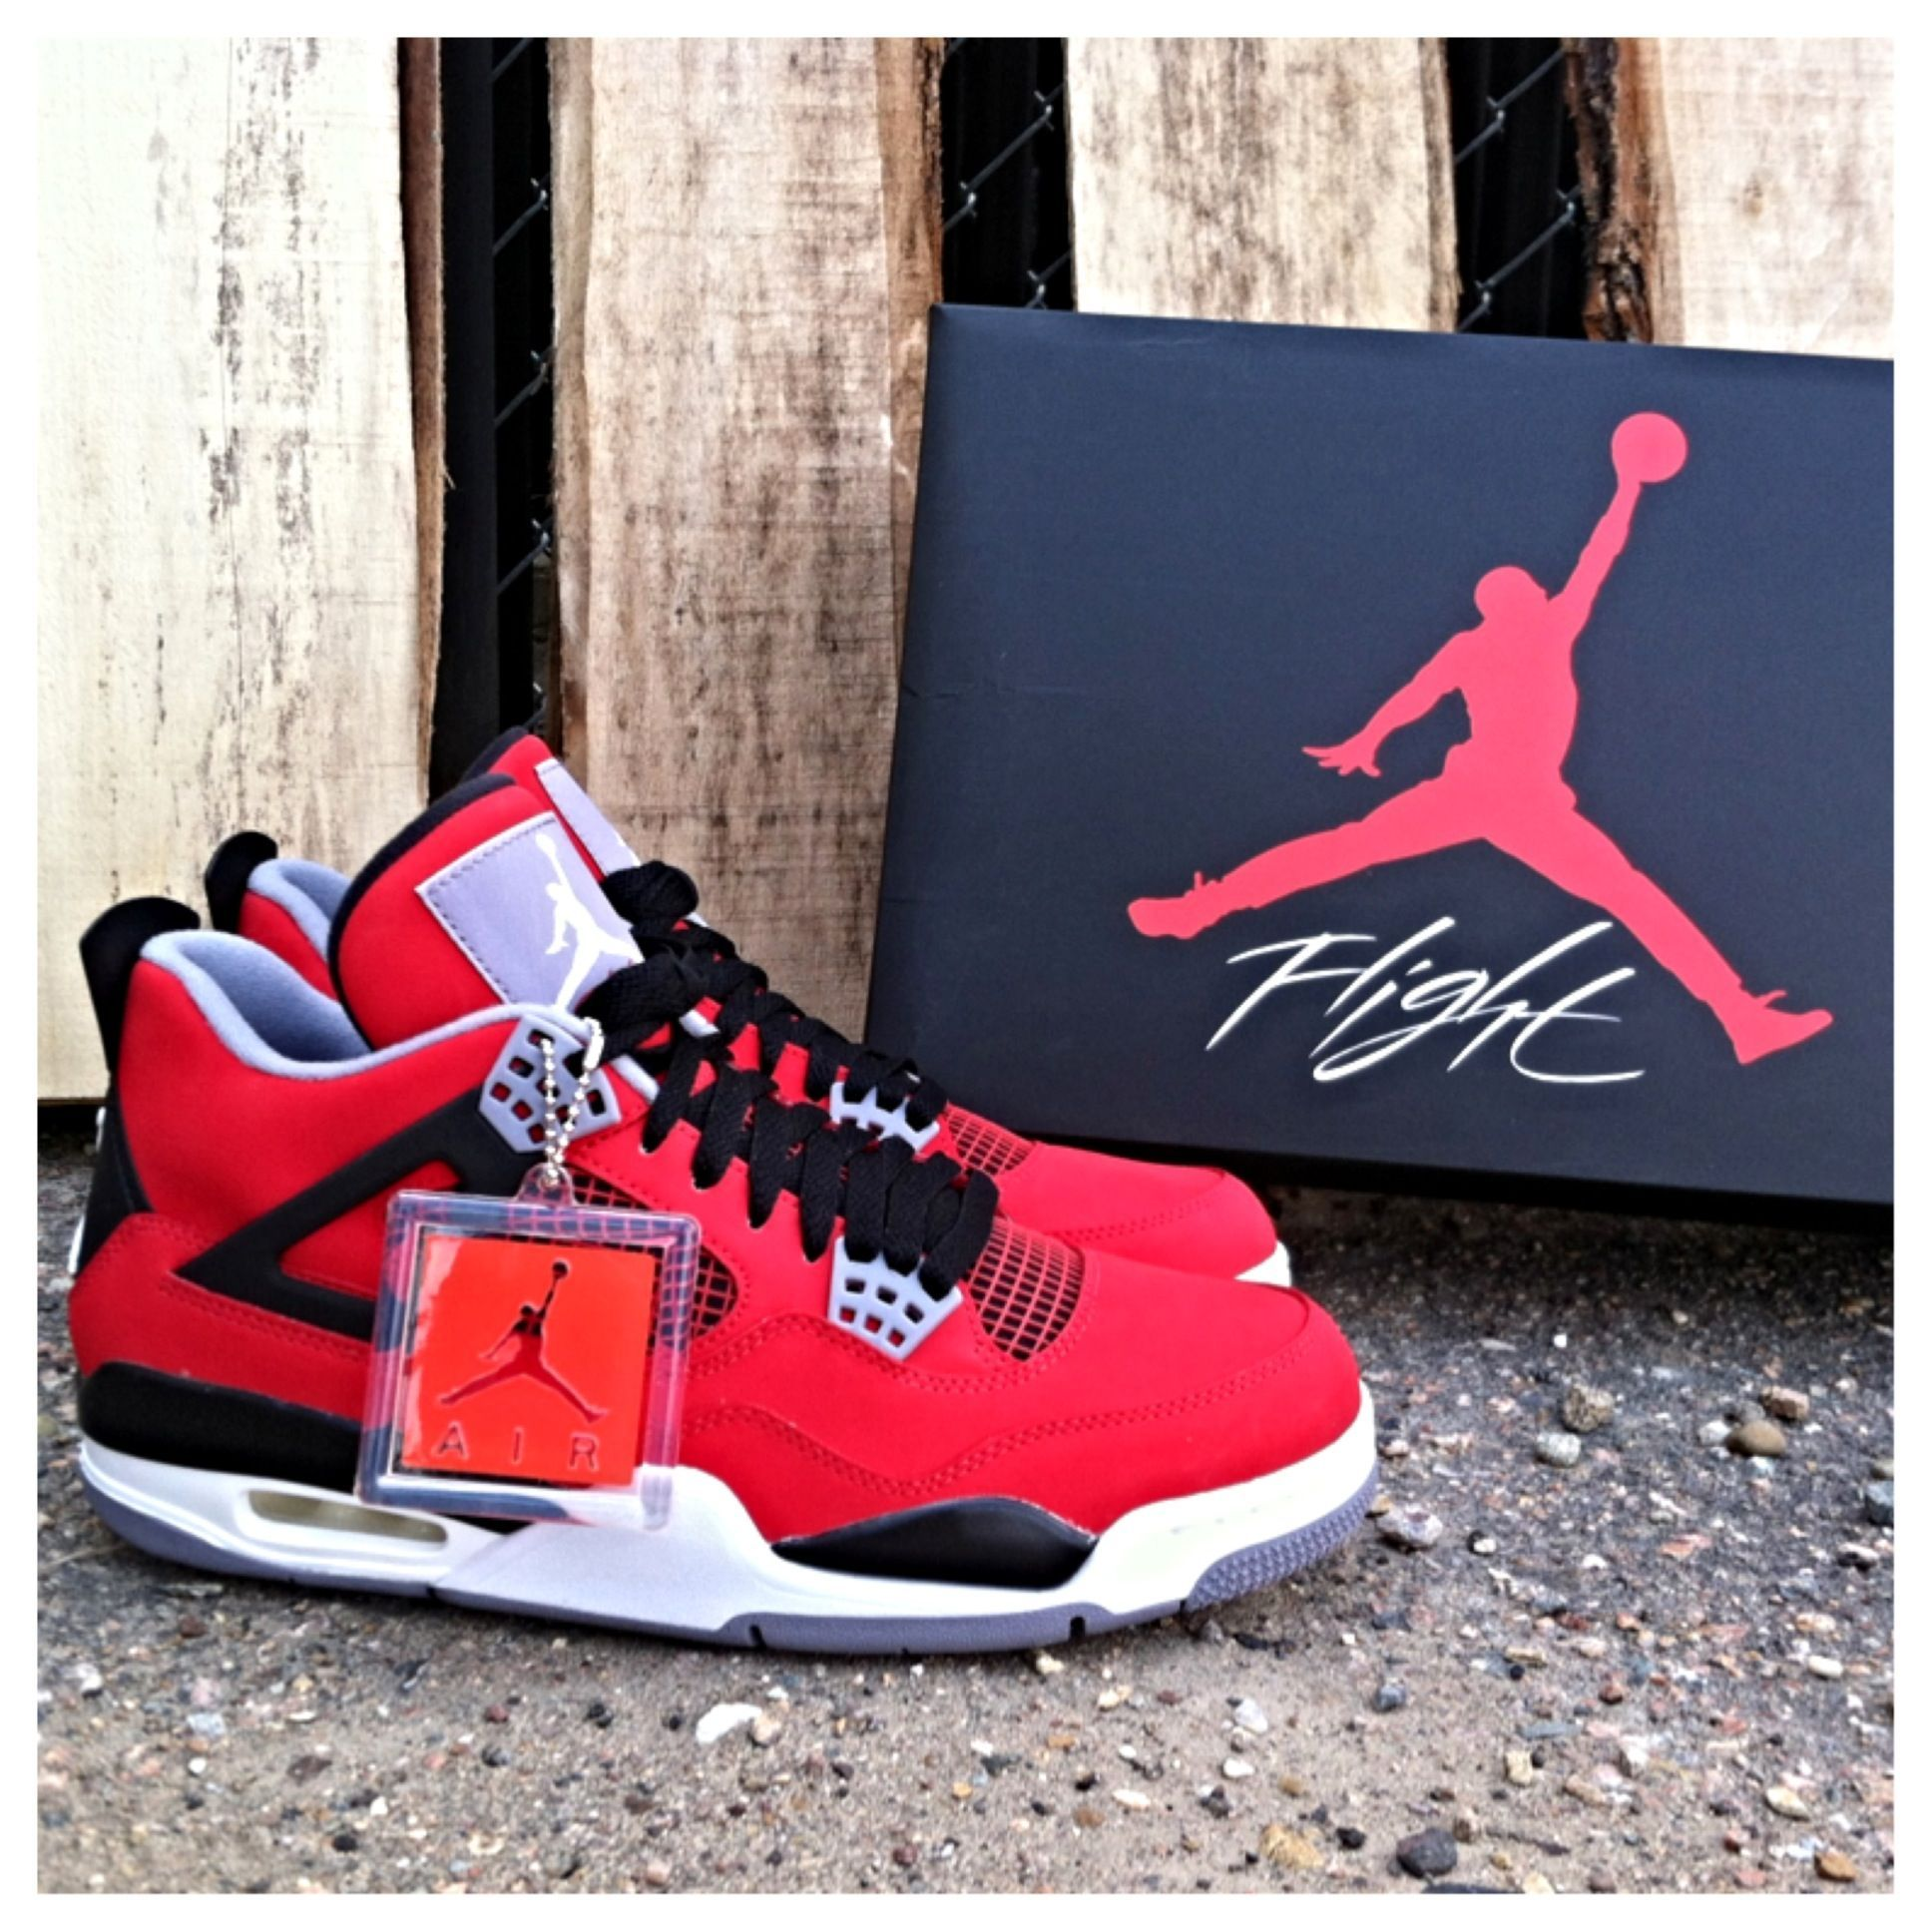 super popular 8774e 283ae  ReleaseReport  Cop your pair of Jordan Retro 4s on 7 13  Eastbay